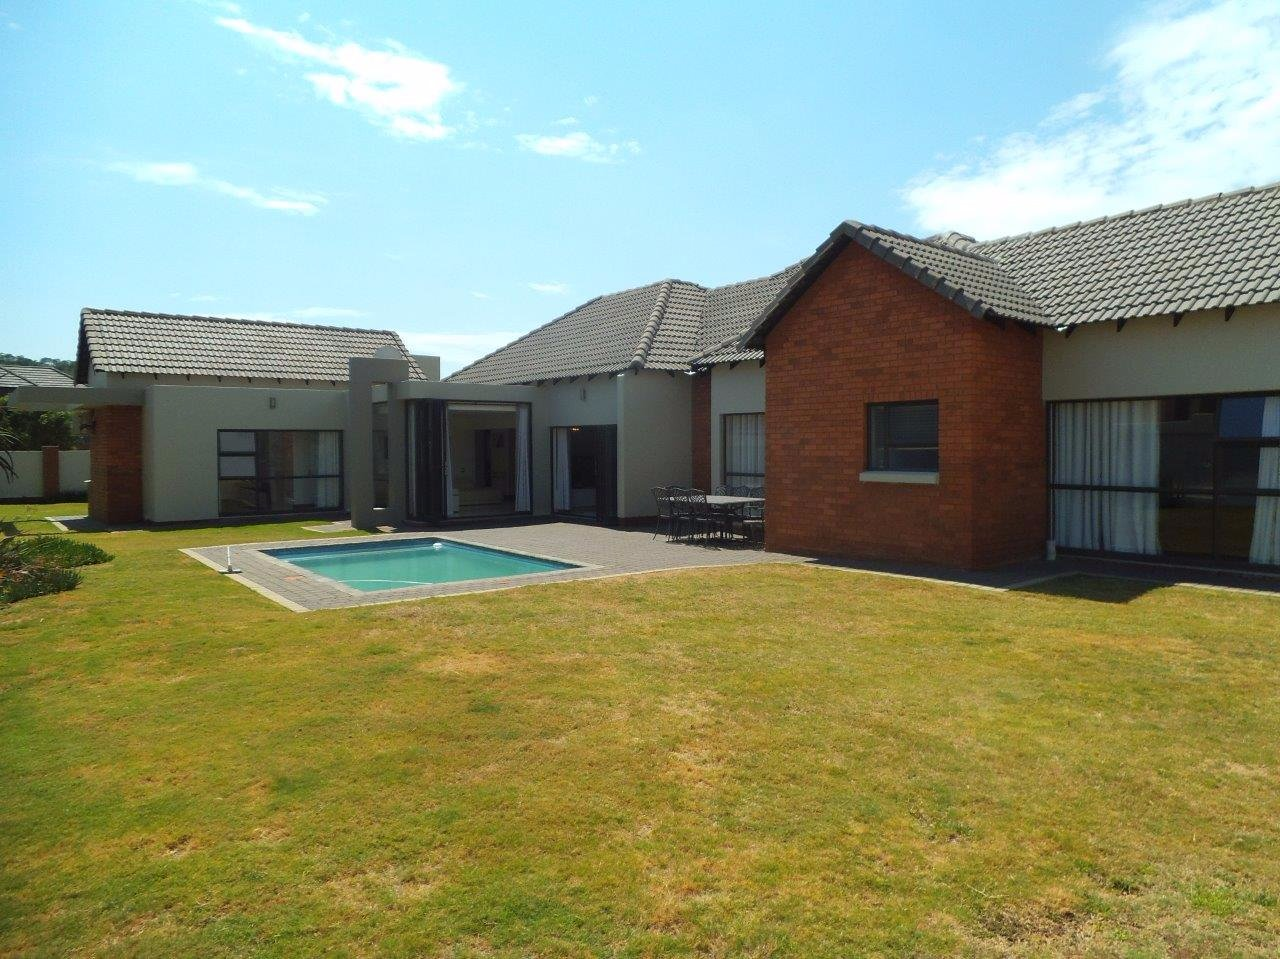 Alberton, Meyersdal Property  | Houses For Sale Meyersdal, Meyersdal, House 4 bedrooms property for sale Price:4,690,000